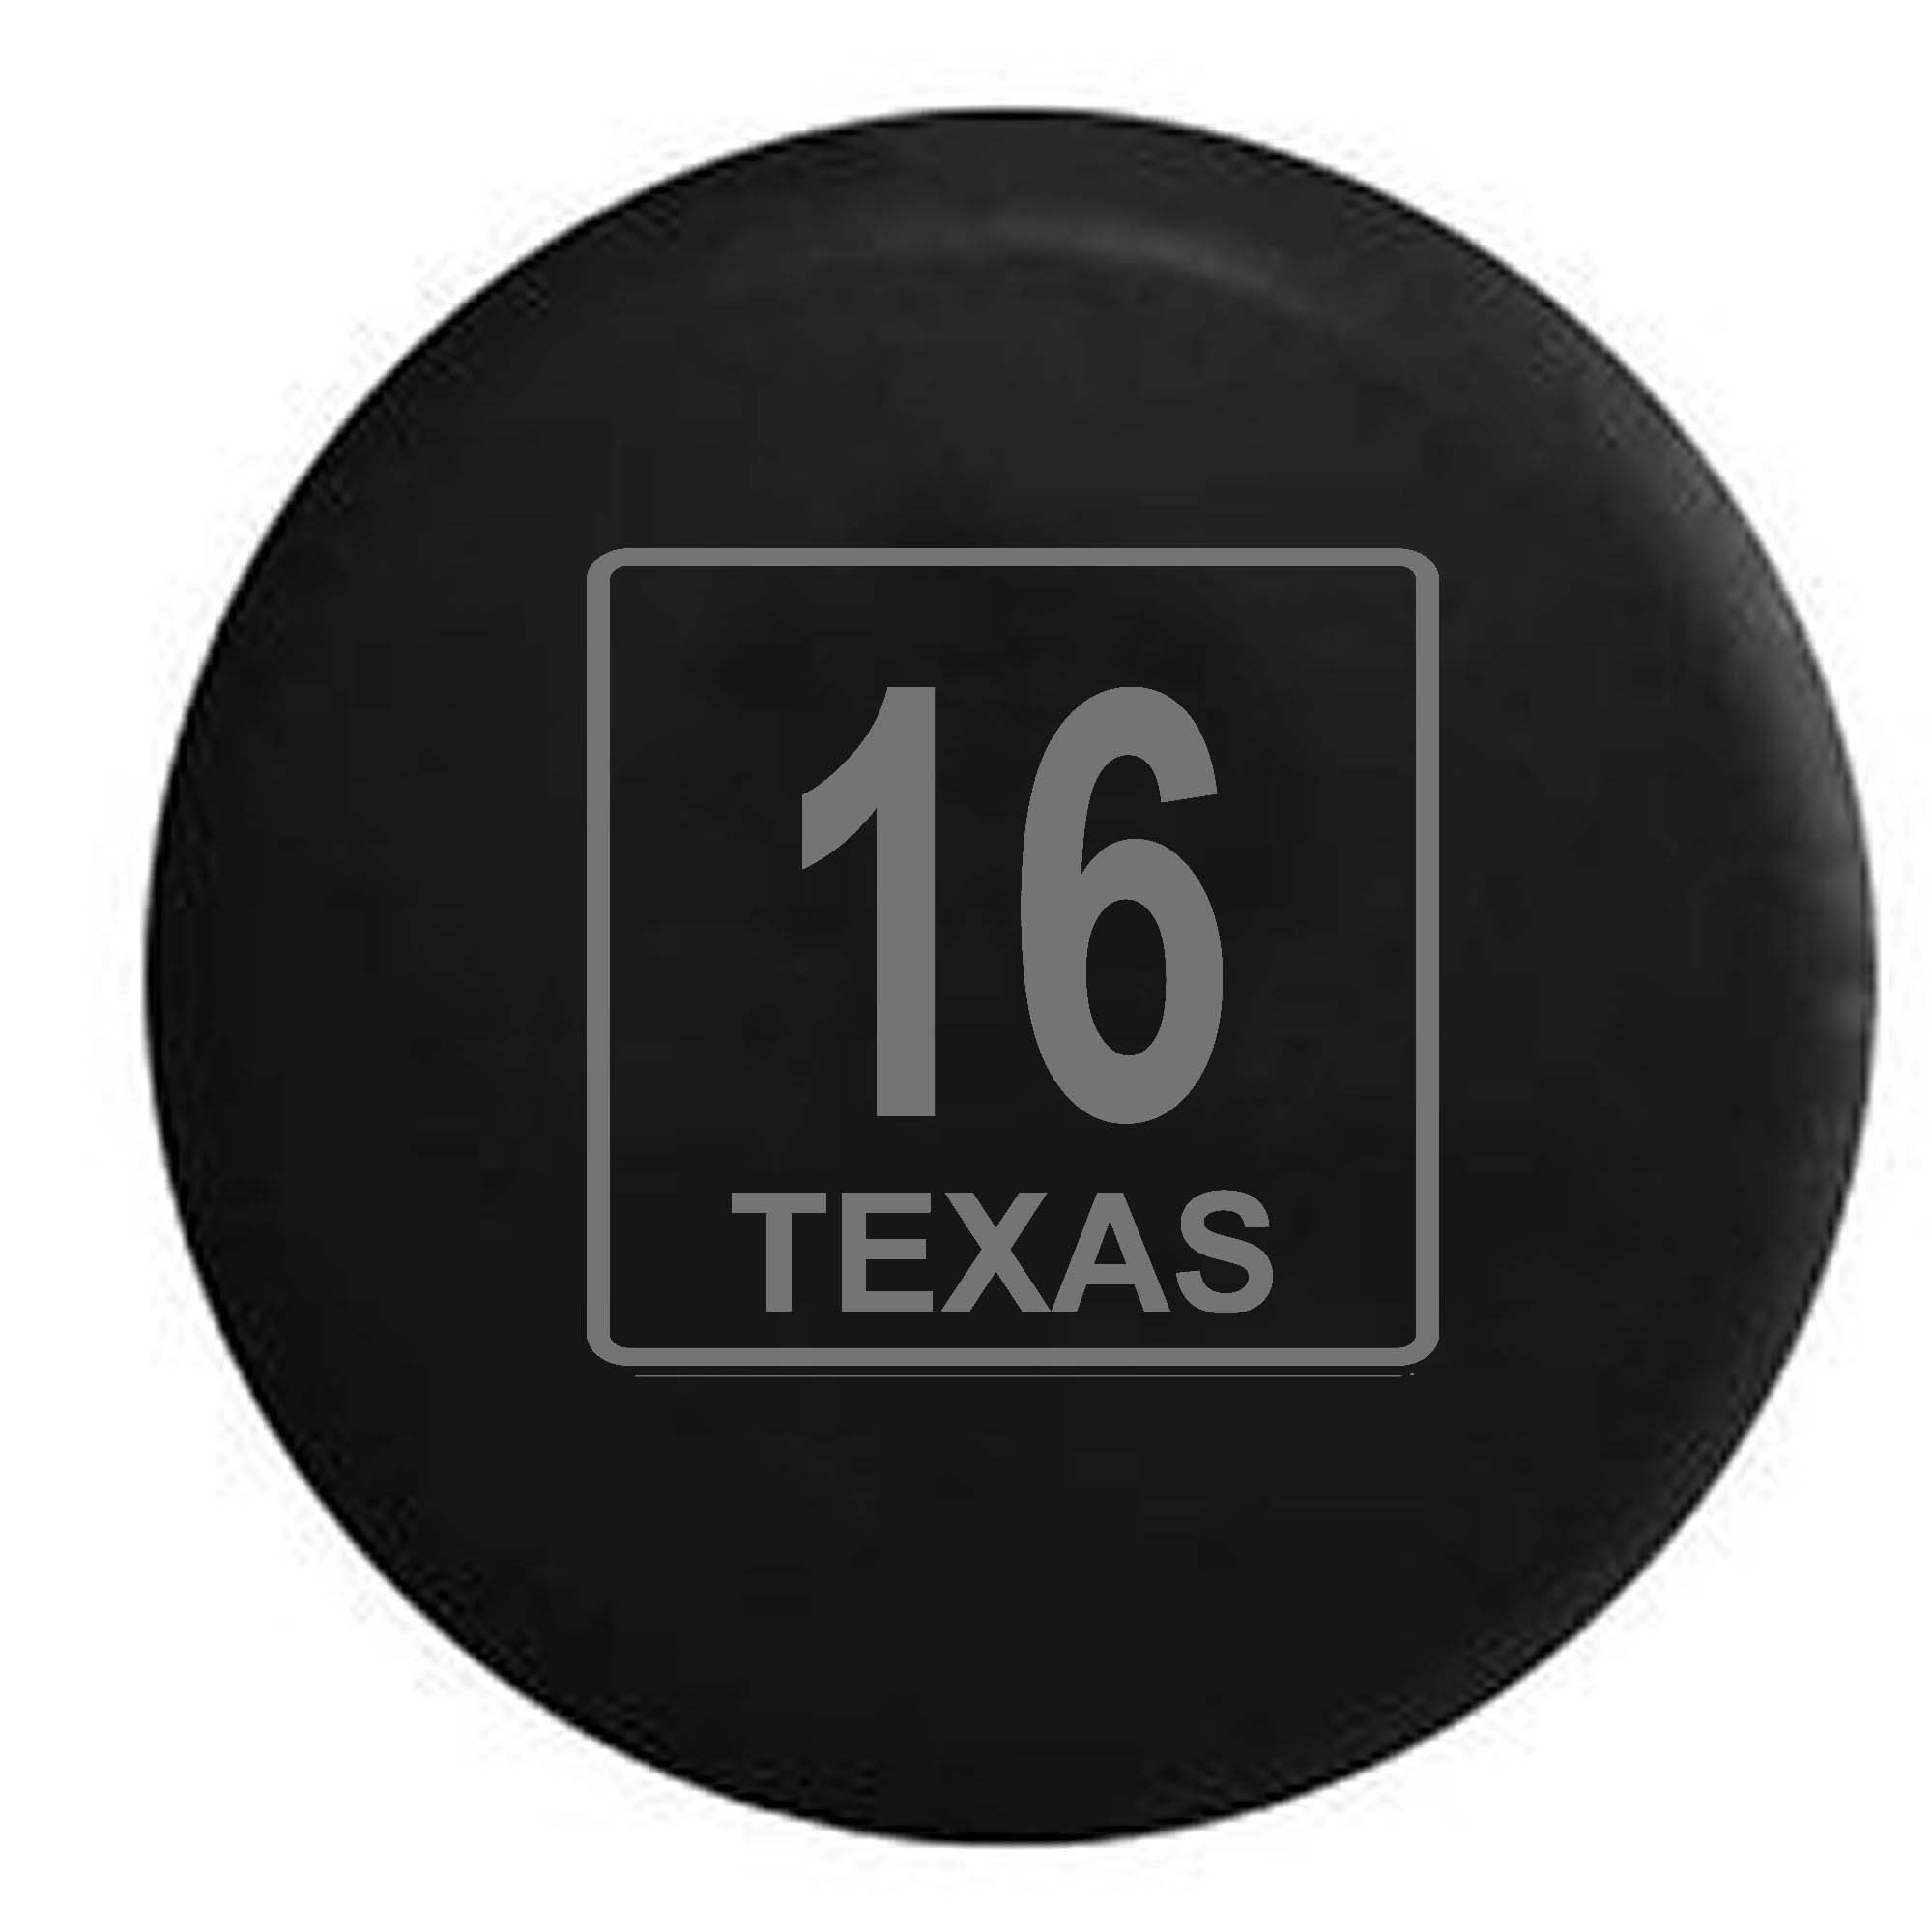 Texas State Route Highway 16 Scenic Road Sign Spare Tire Cover Vinyl Stealth Black 33 in